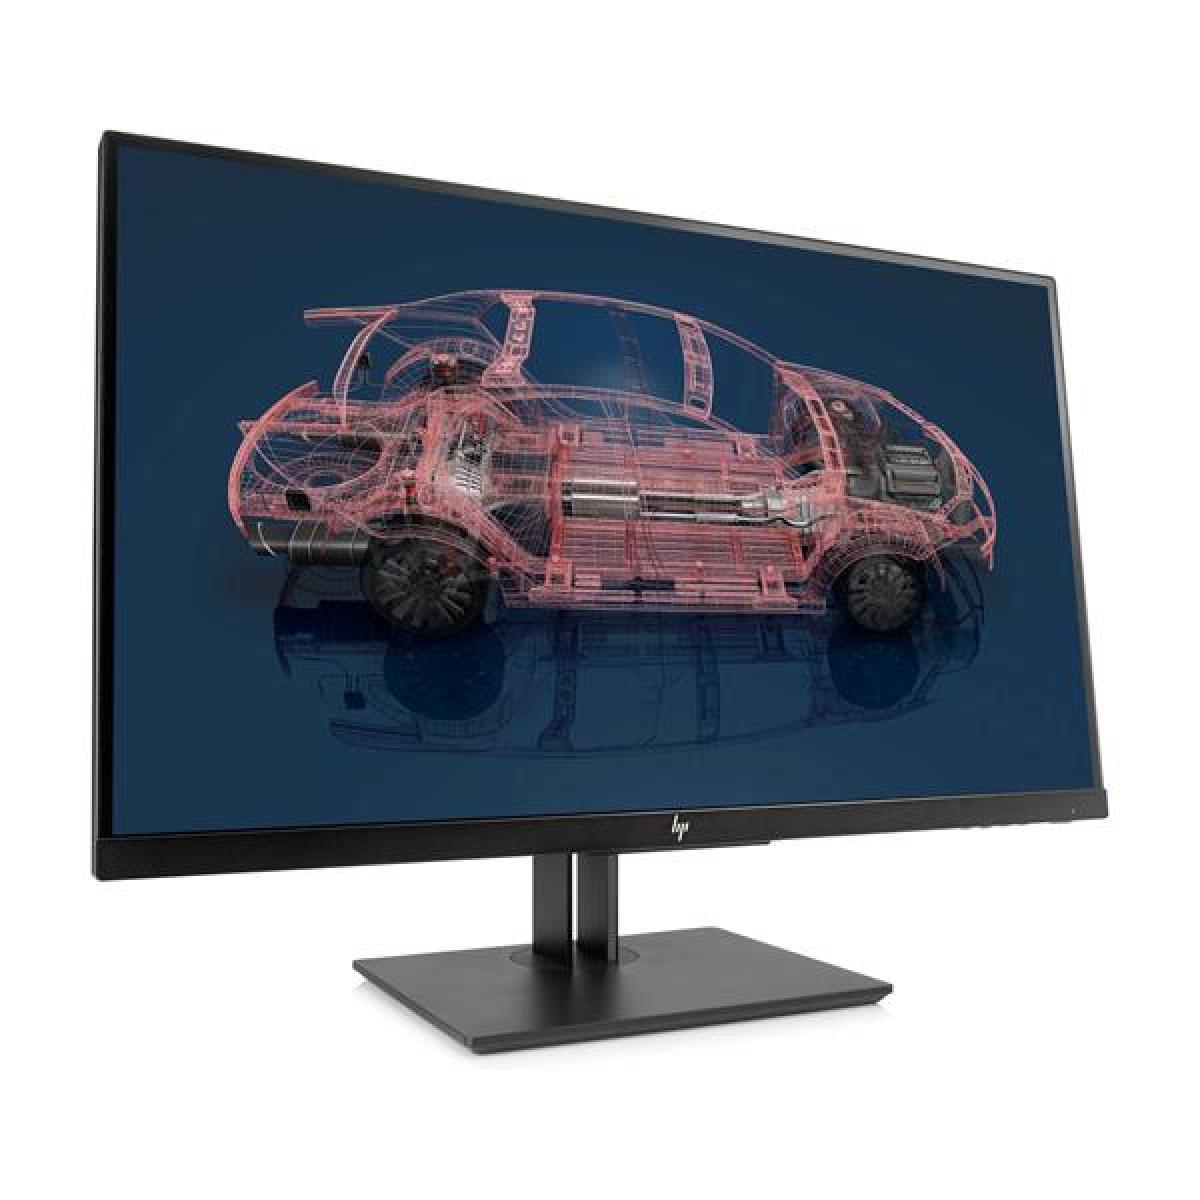 HP Z27n G2 Workstation-Monitor